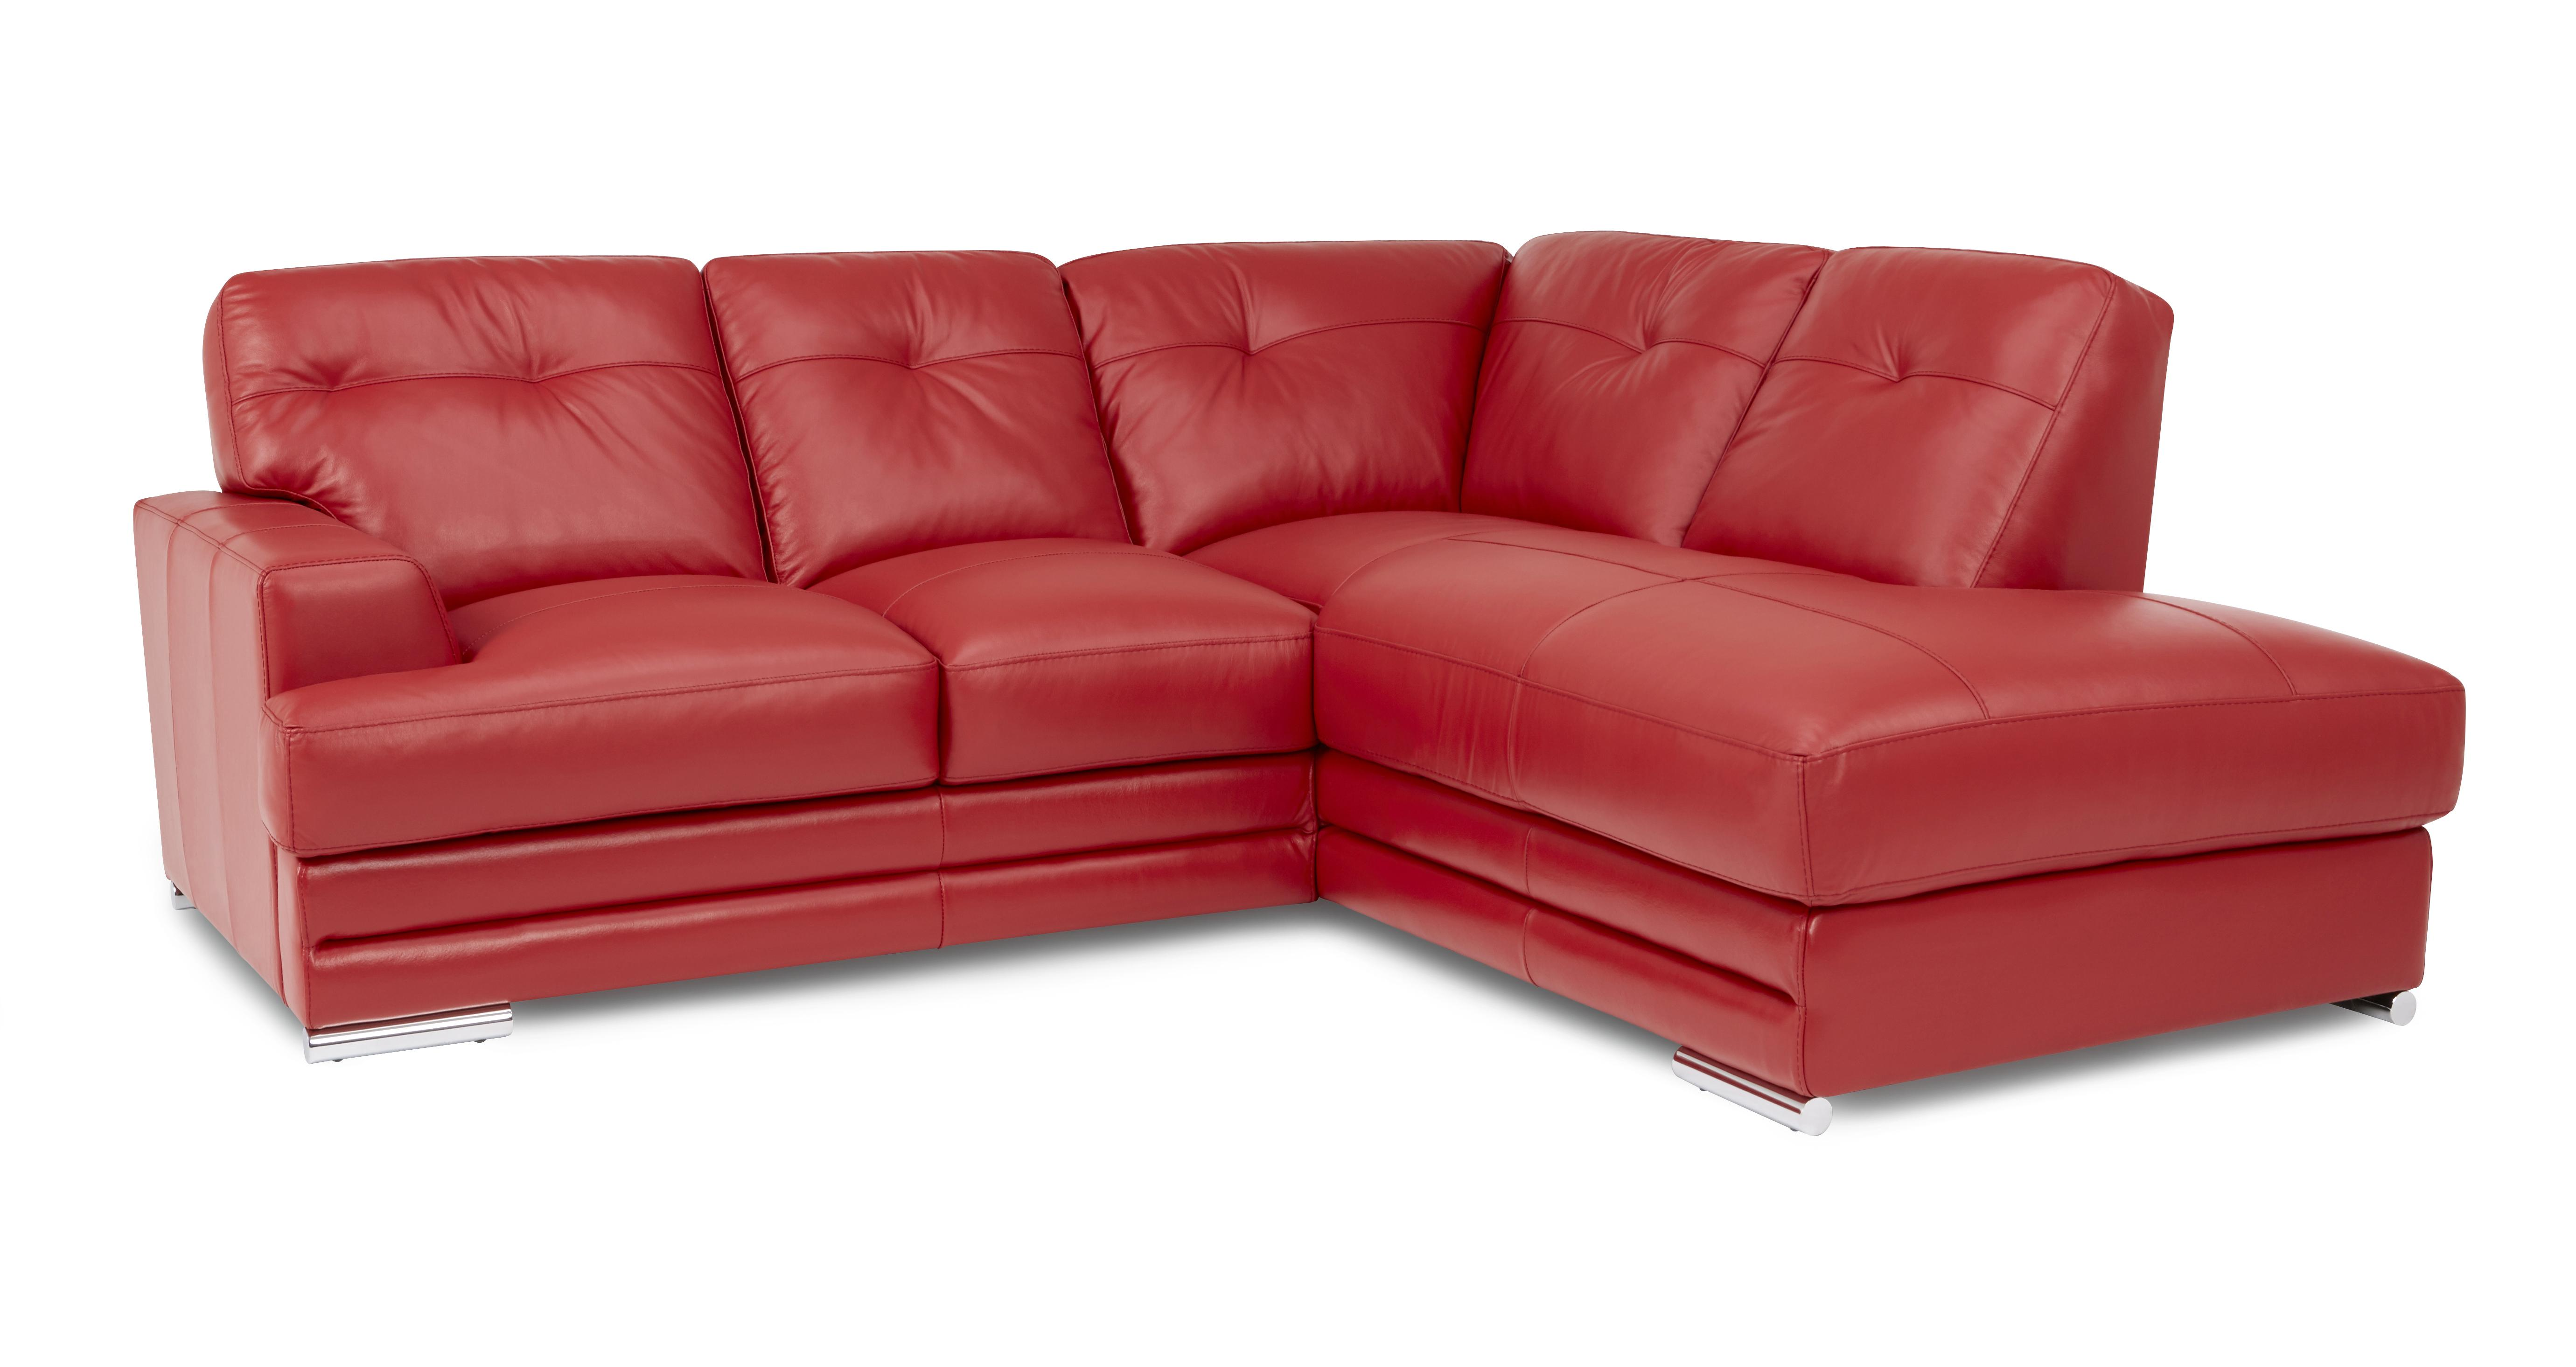 dfs red leather corner sofa bed how to make set at home quantum enzo 100 left hand